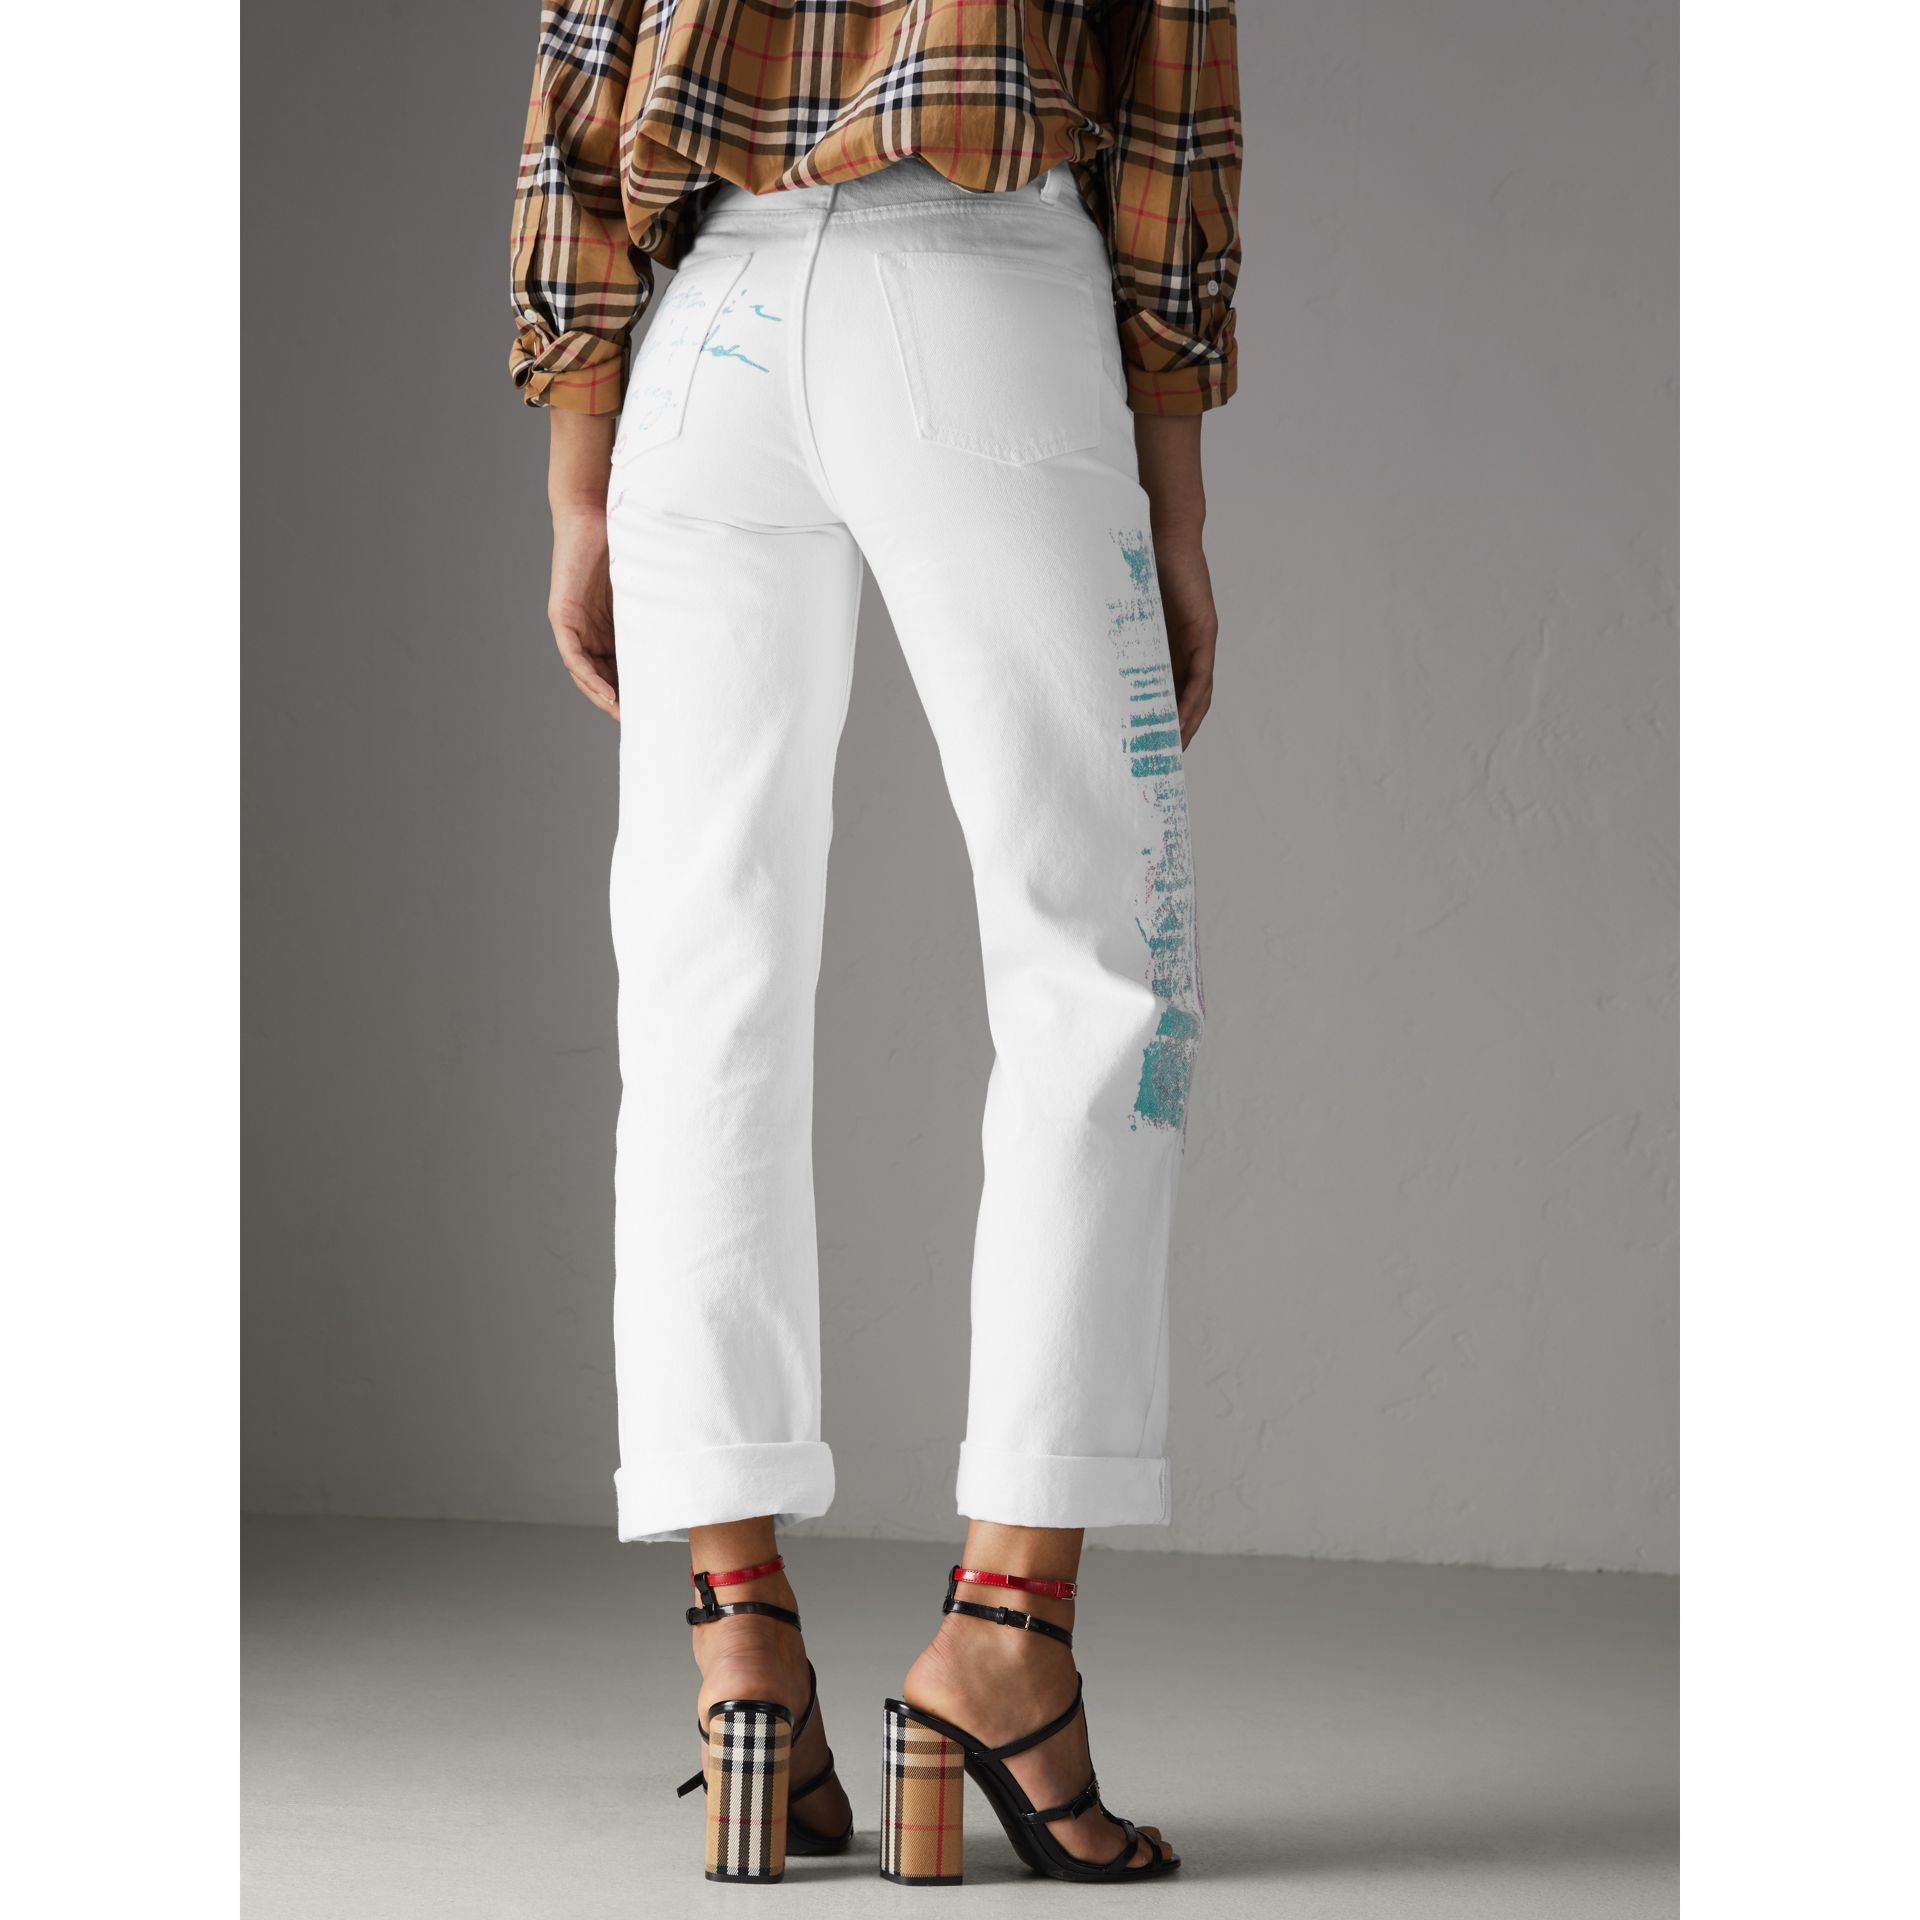 Straight Fit Postcard Print Japanese Denim Jeans in Natural White - Women | Burberry - gallery image 2